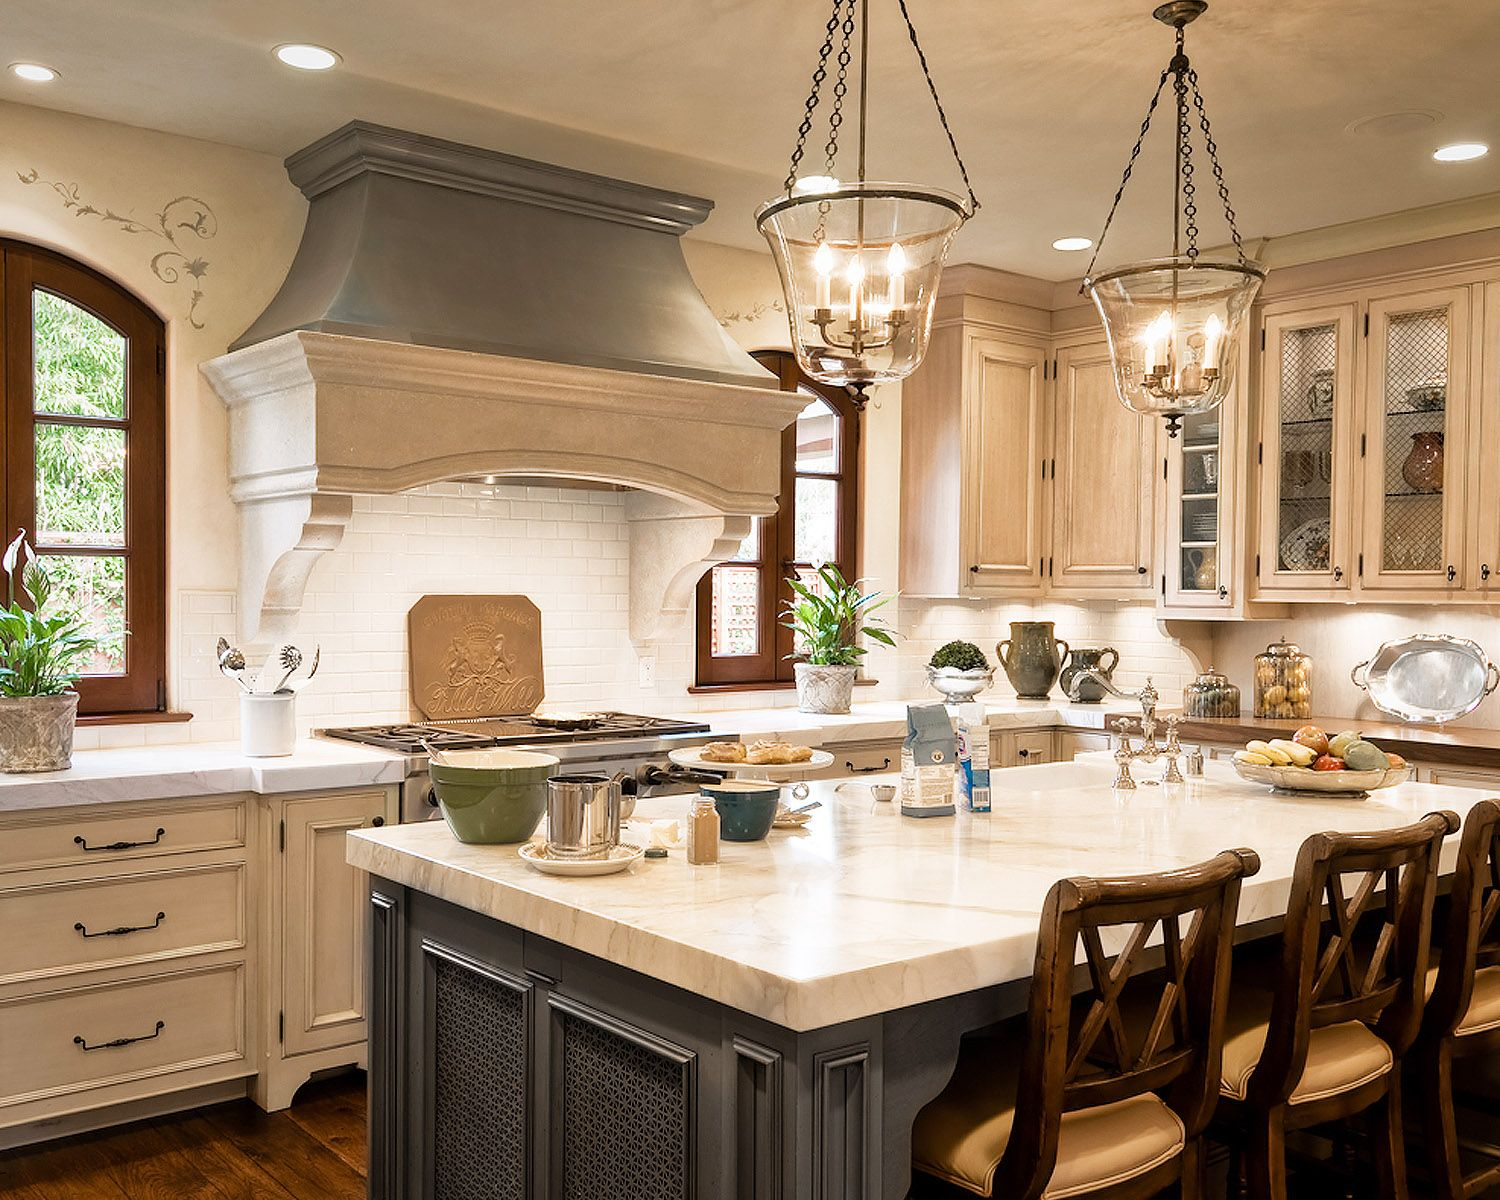 Custom Designers Kitchen Cabinets Bath Cabinetry Showrooms In Nassau County Long Island New Y Luxury Kitchen Design Kitchen Cabinets Showroom Tuscan Kitchen